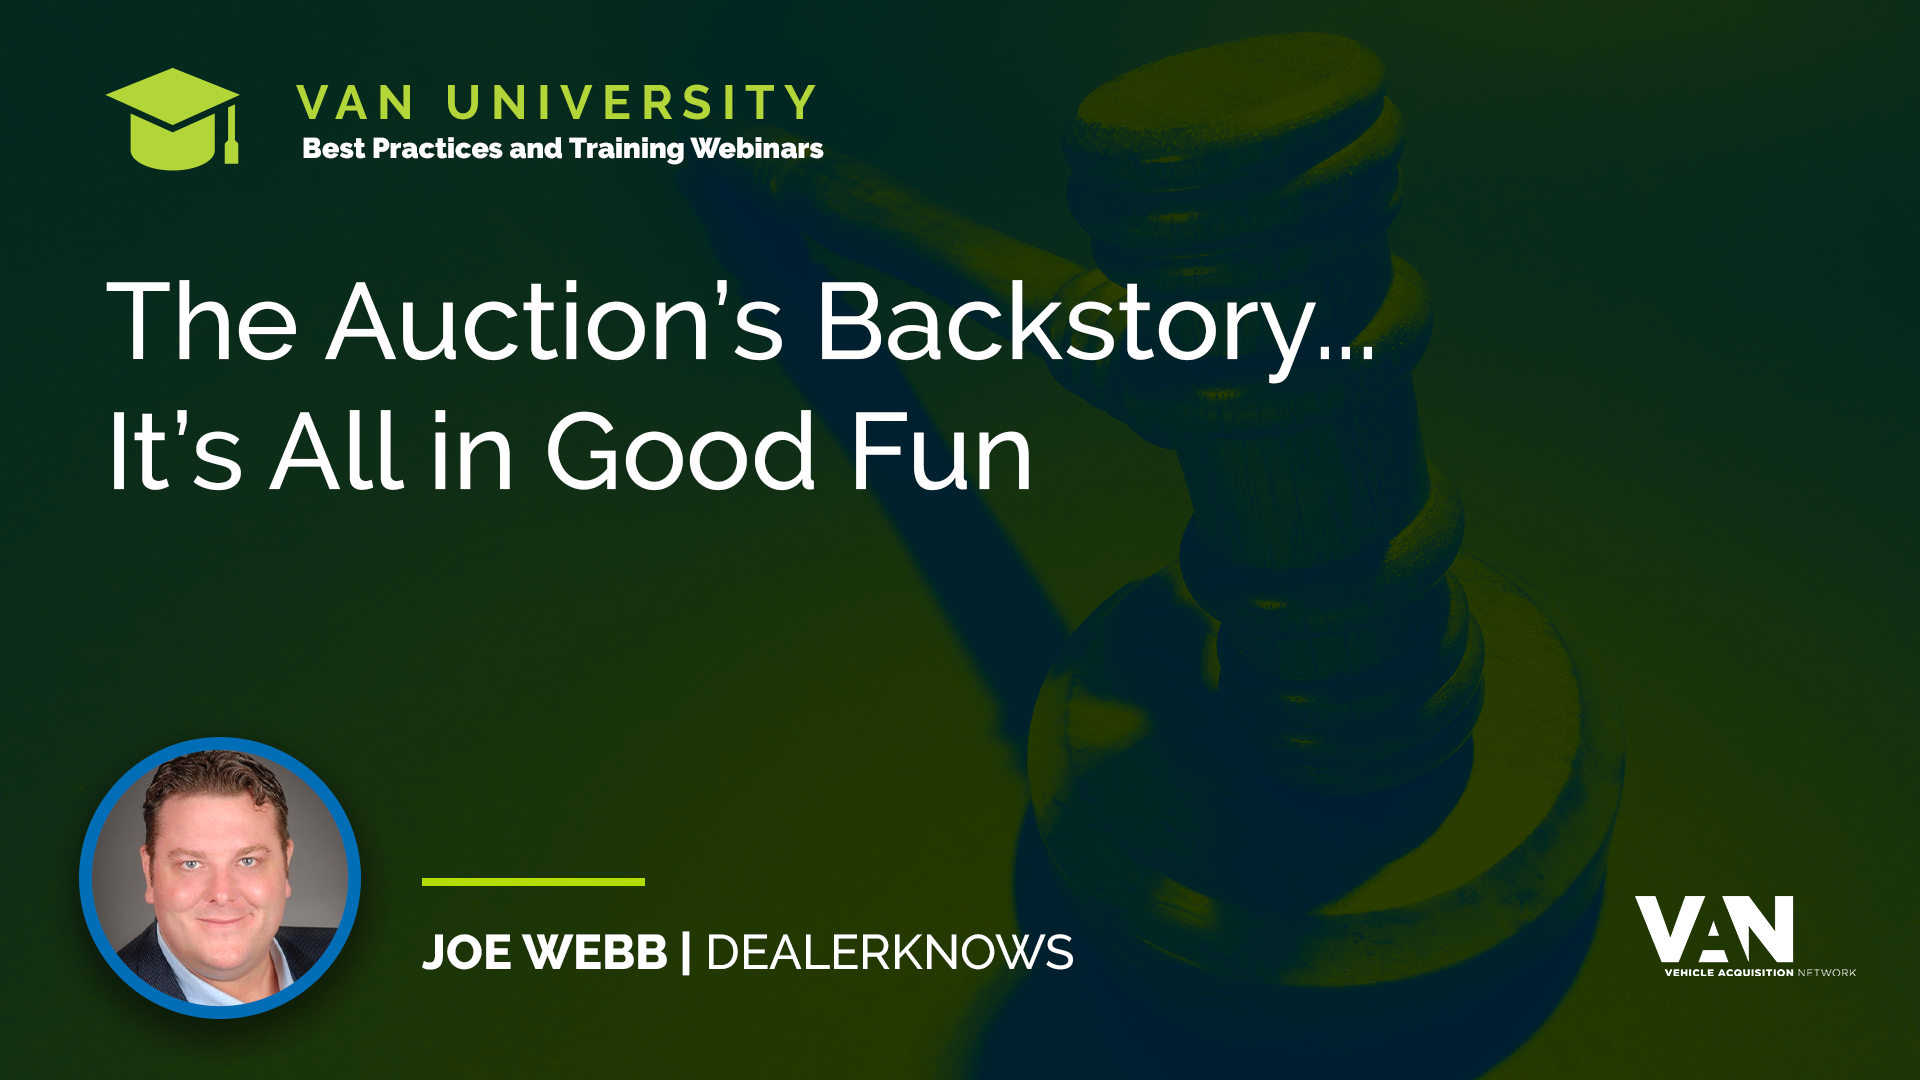 Joe Webb, Writer and Director of 'The Auction' video series